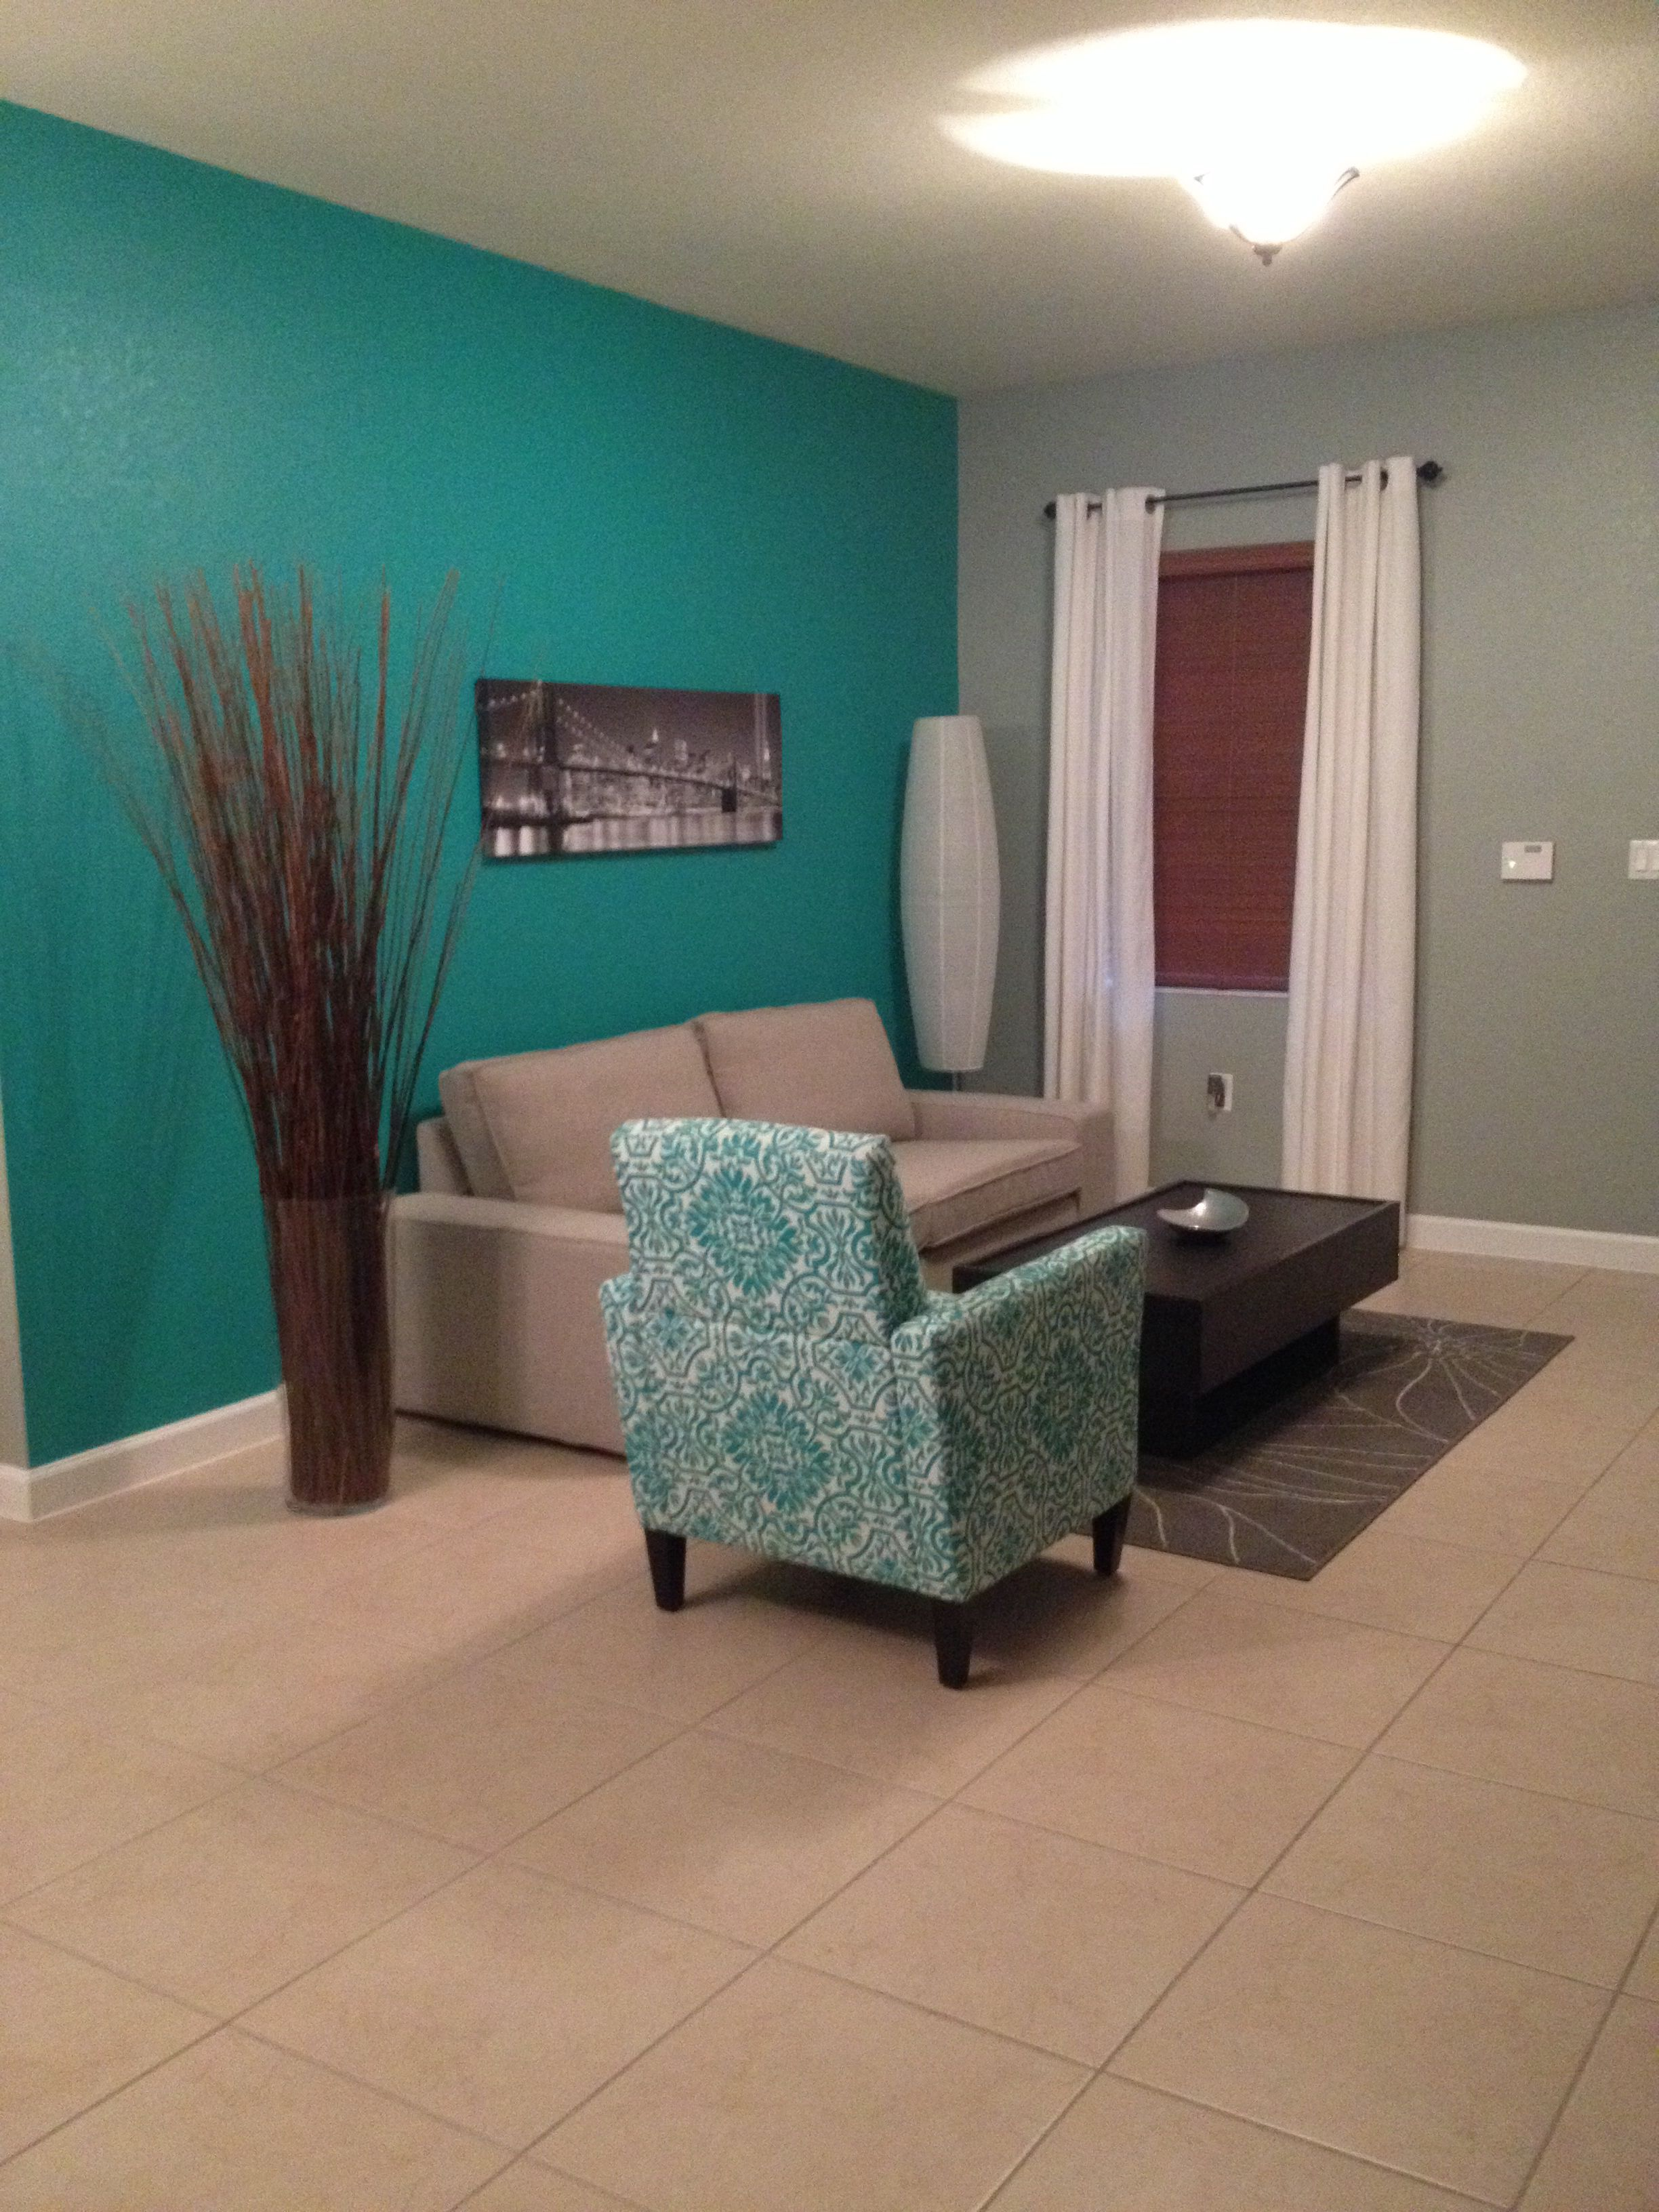 Home gym colors mesmerizing paint ideas good color for sherwin